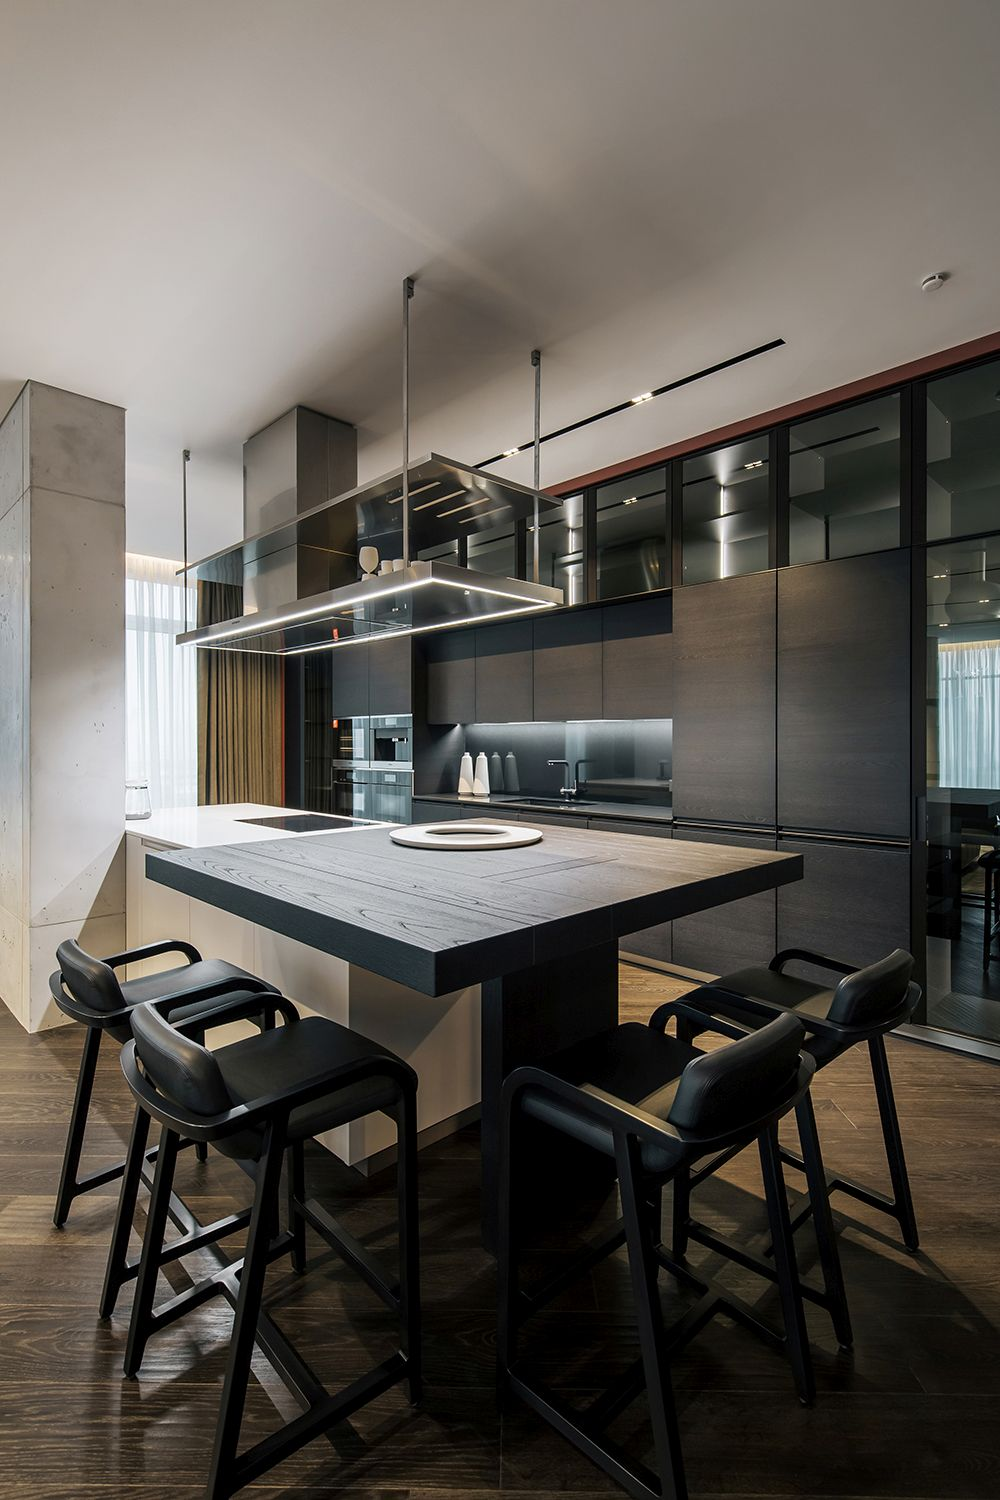 The kitchen features dark cabinetry and a two-tone island with a table/ bar extension